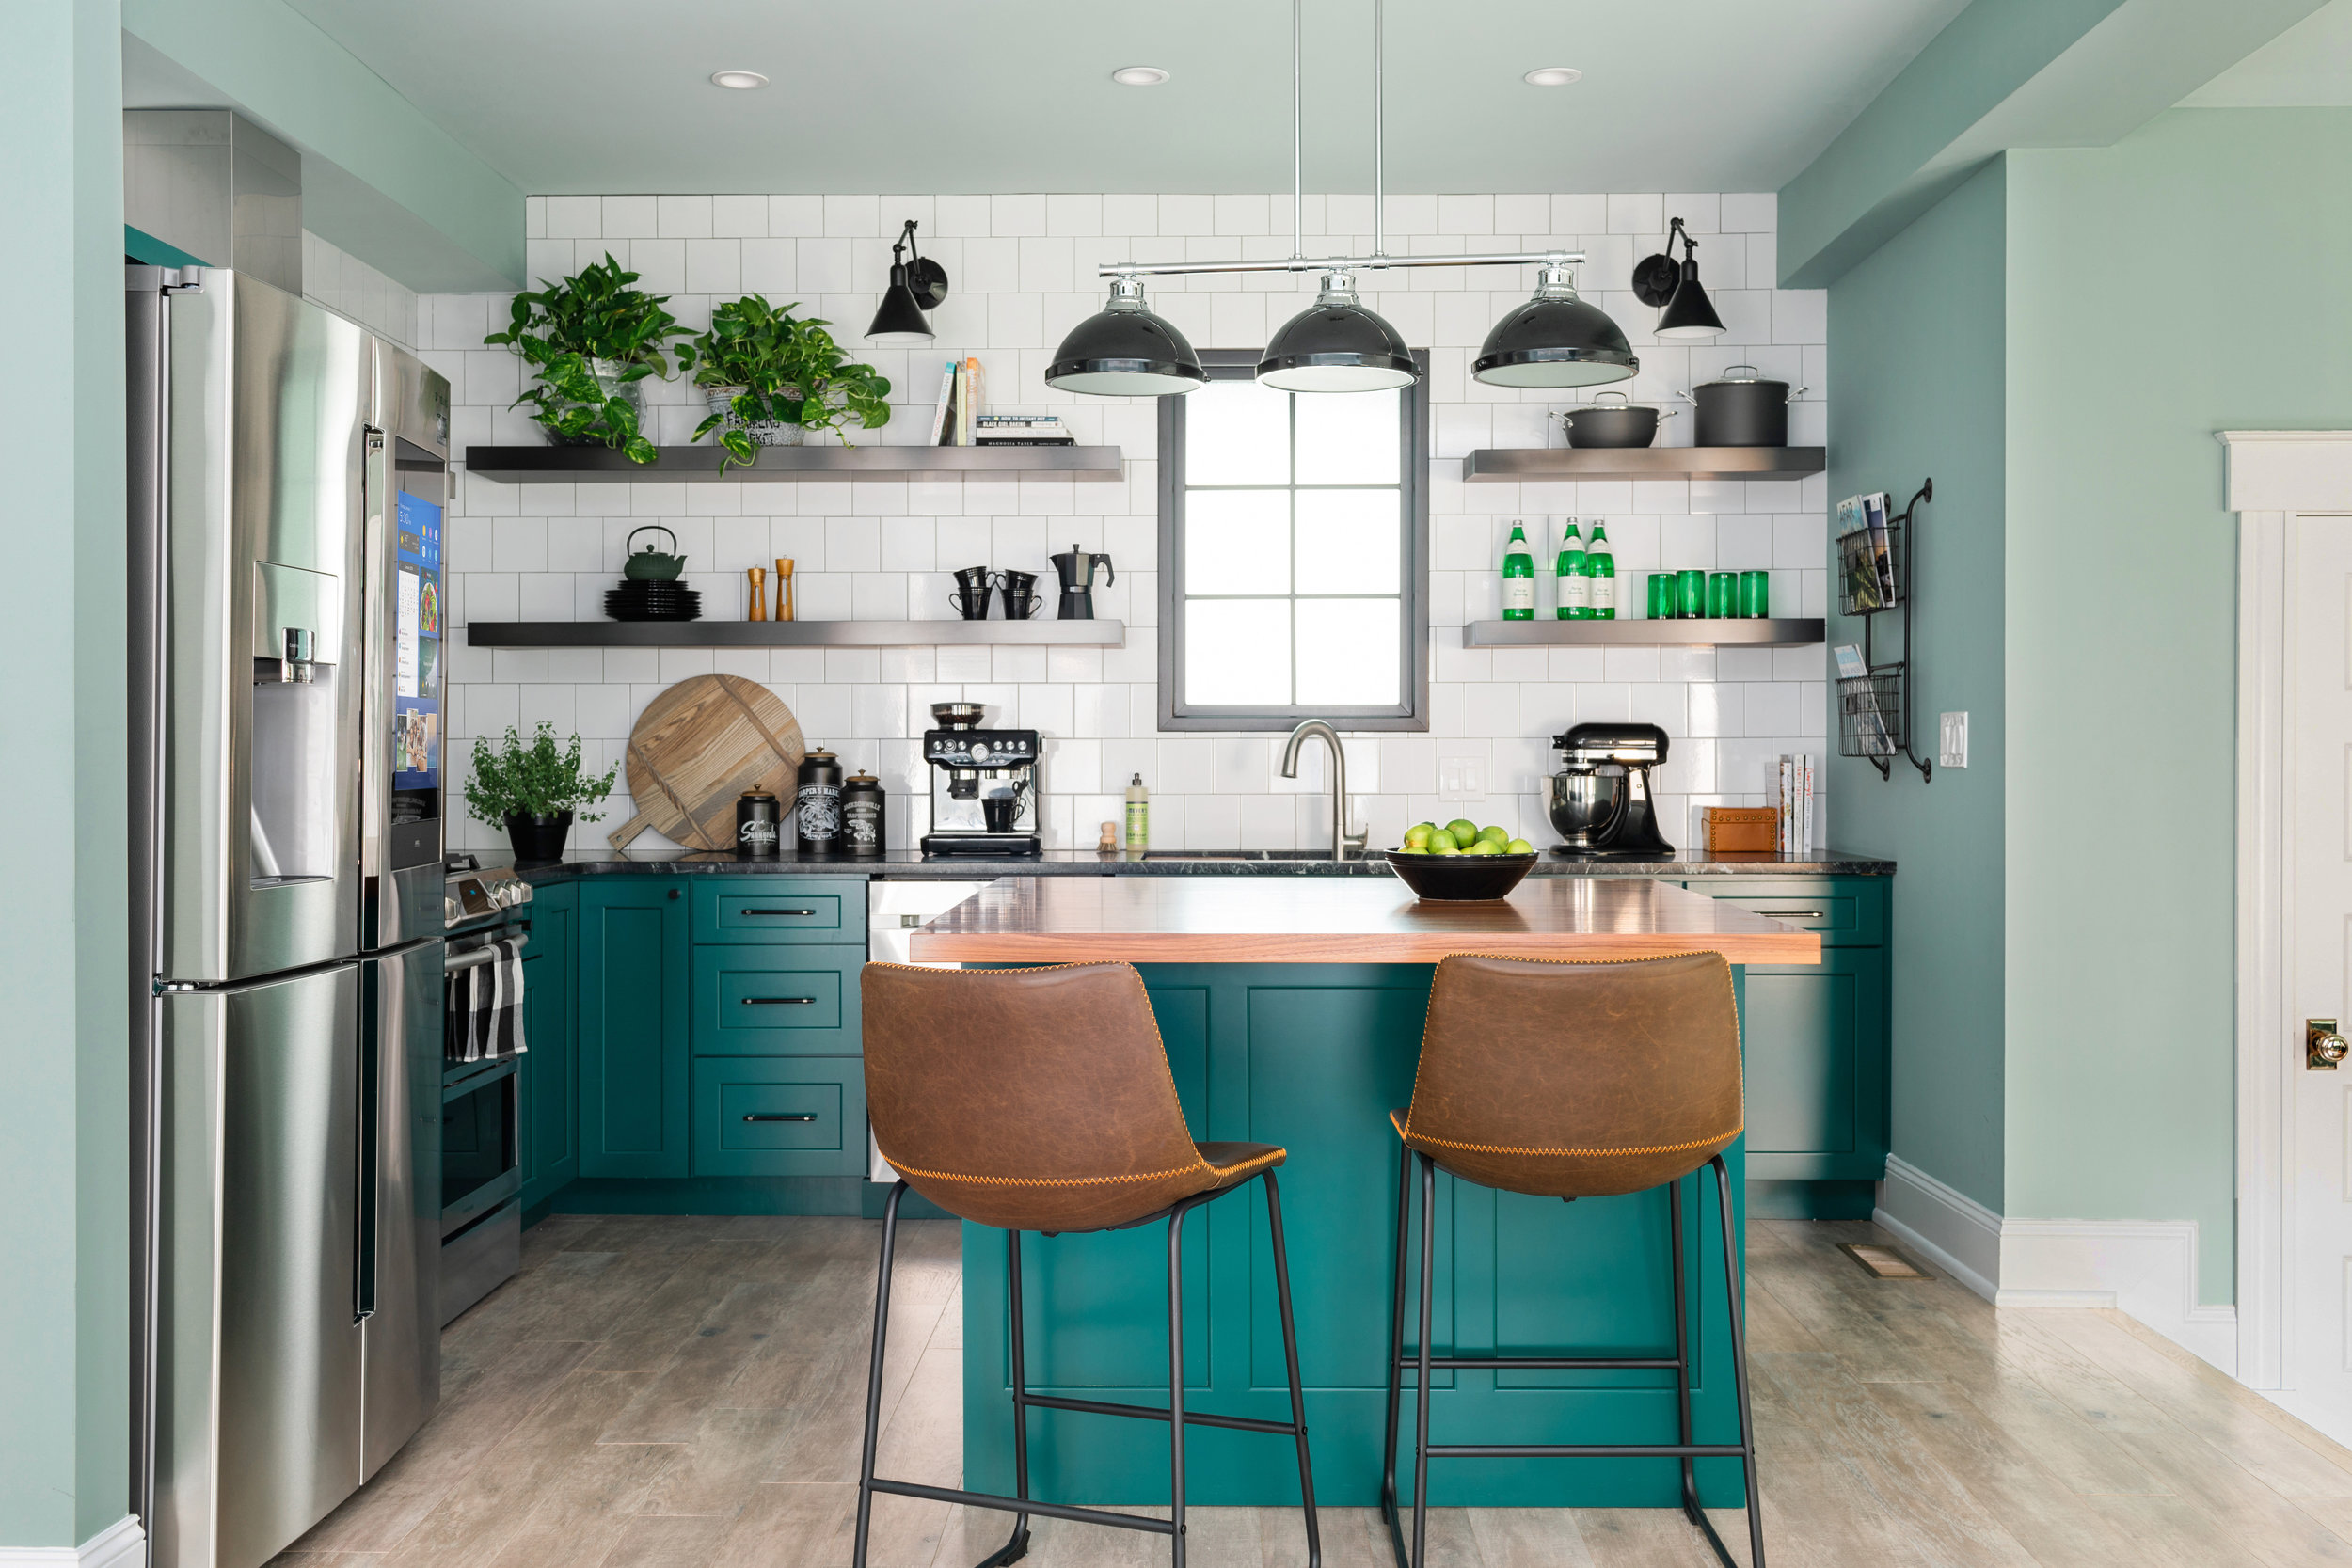 uo2018_kitchen-09-wide-staight-KB2A0227_h.jpg